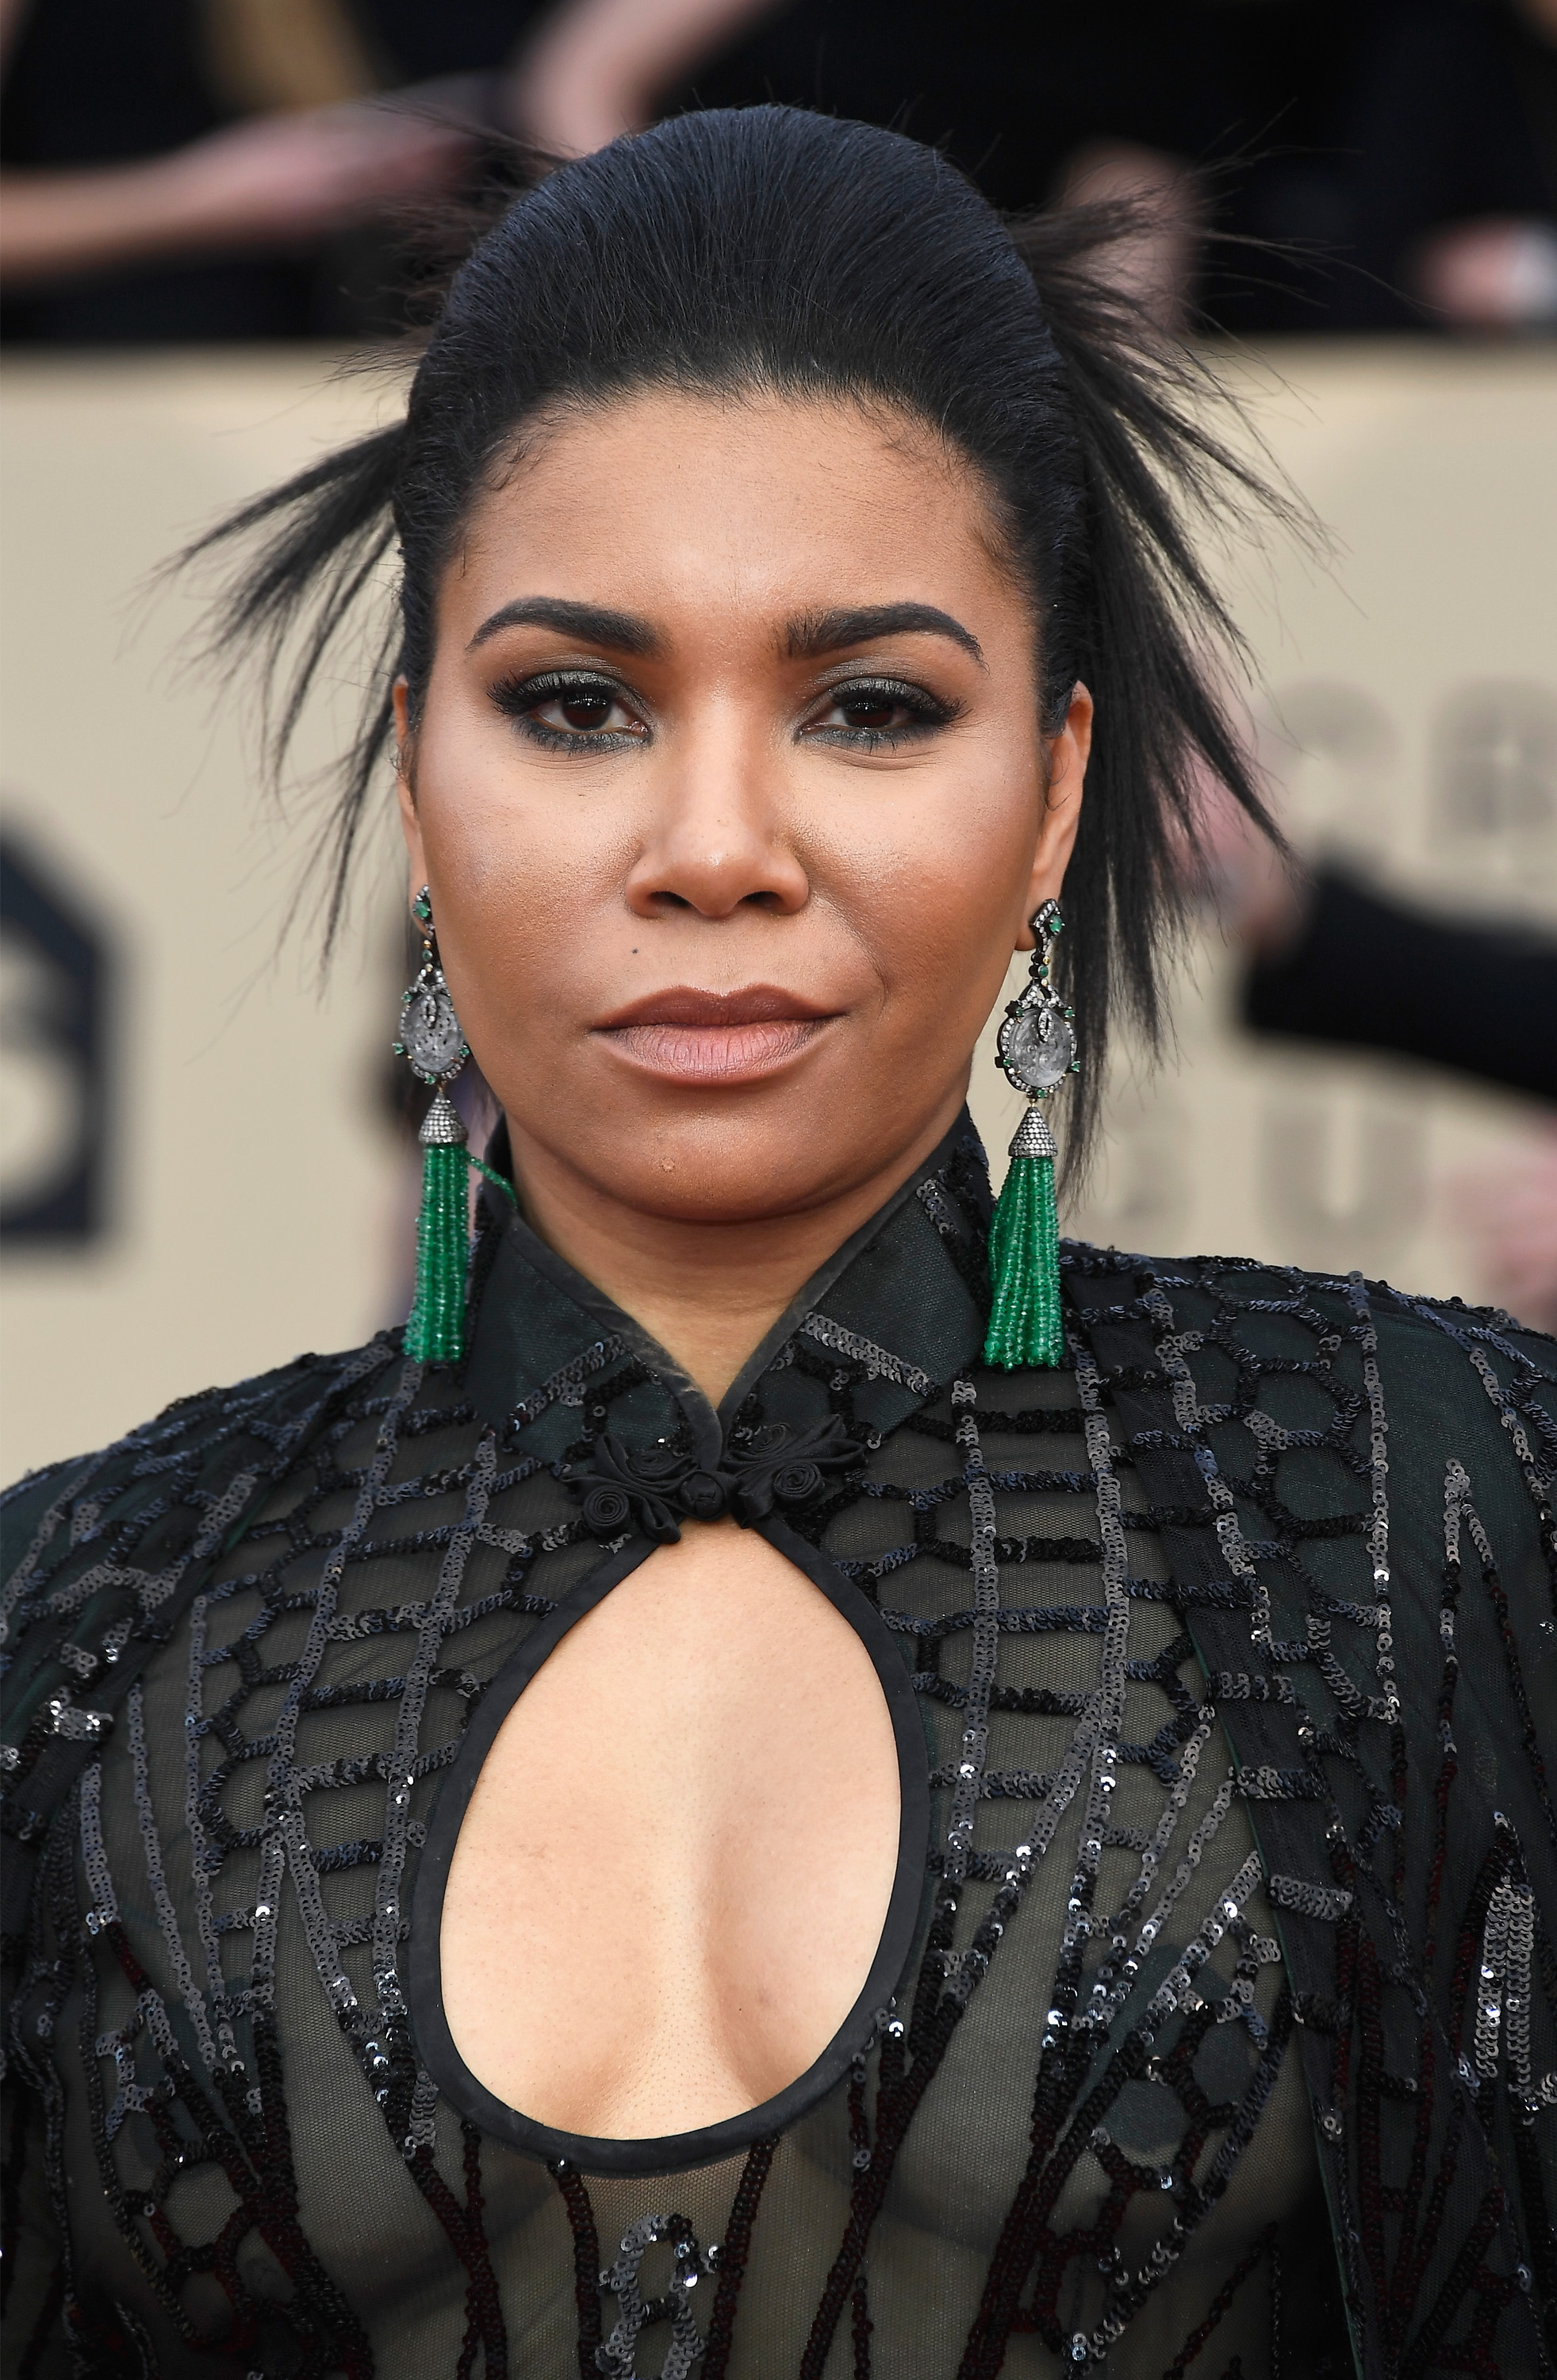 Actor Jessica Pimentel attends the 24th Annual Screen ActorsGuild Awards at The Shrine Auditorium on January 21, 2018 in Los Angeles, California. (Getty Images)